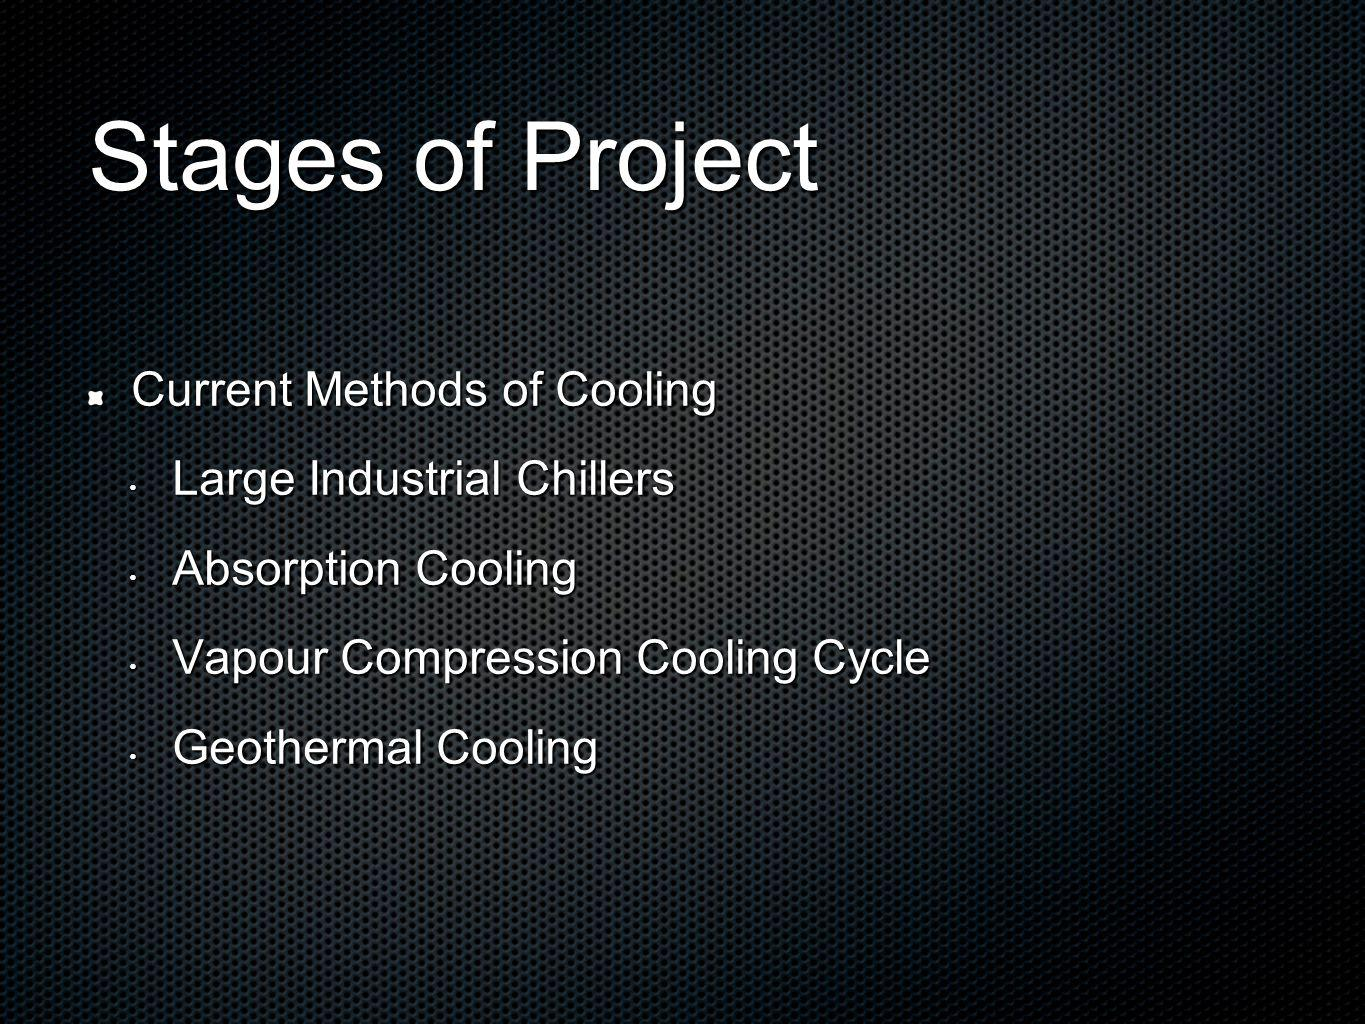 Stages of Project Current Methods of Cooling Large Industrial Chillers Large Industrial Chillers Absorption Cooling Absorption Cooling Vapour Compression Cooling Cycle Vapour Compression Cooling Cycle Geothermal Cooling Geothermal Cooling